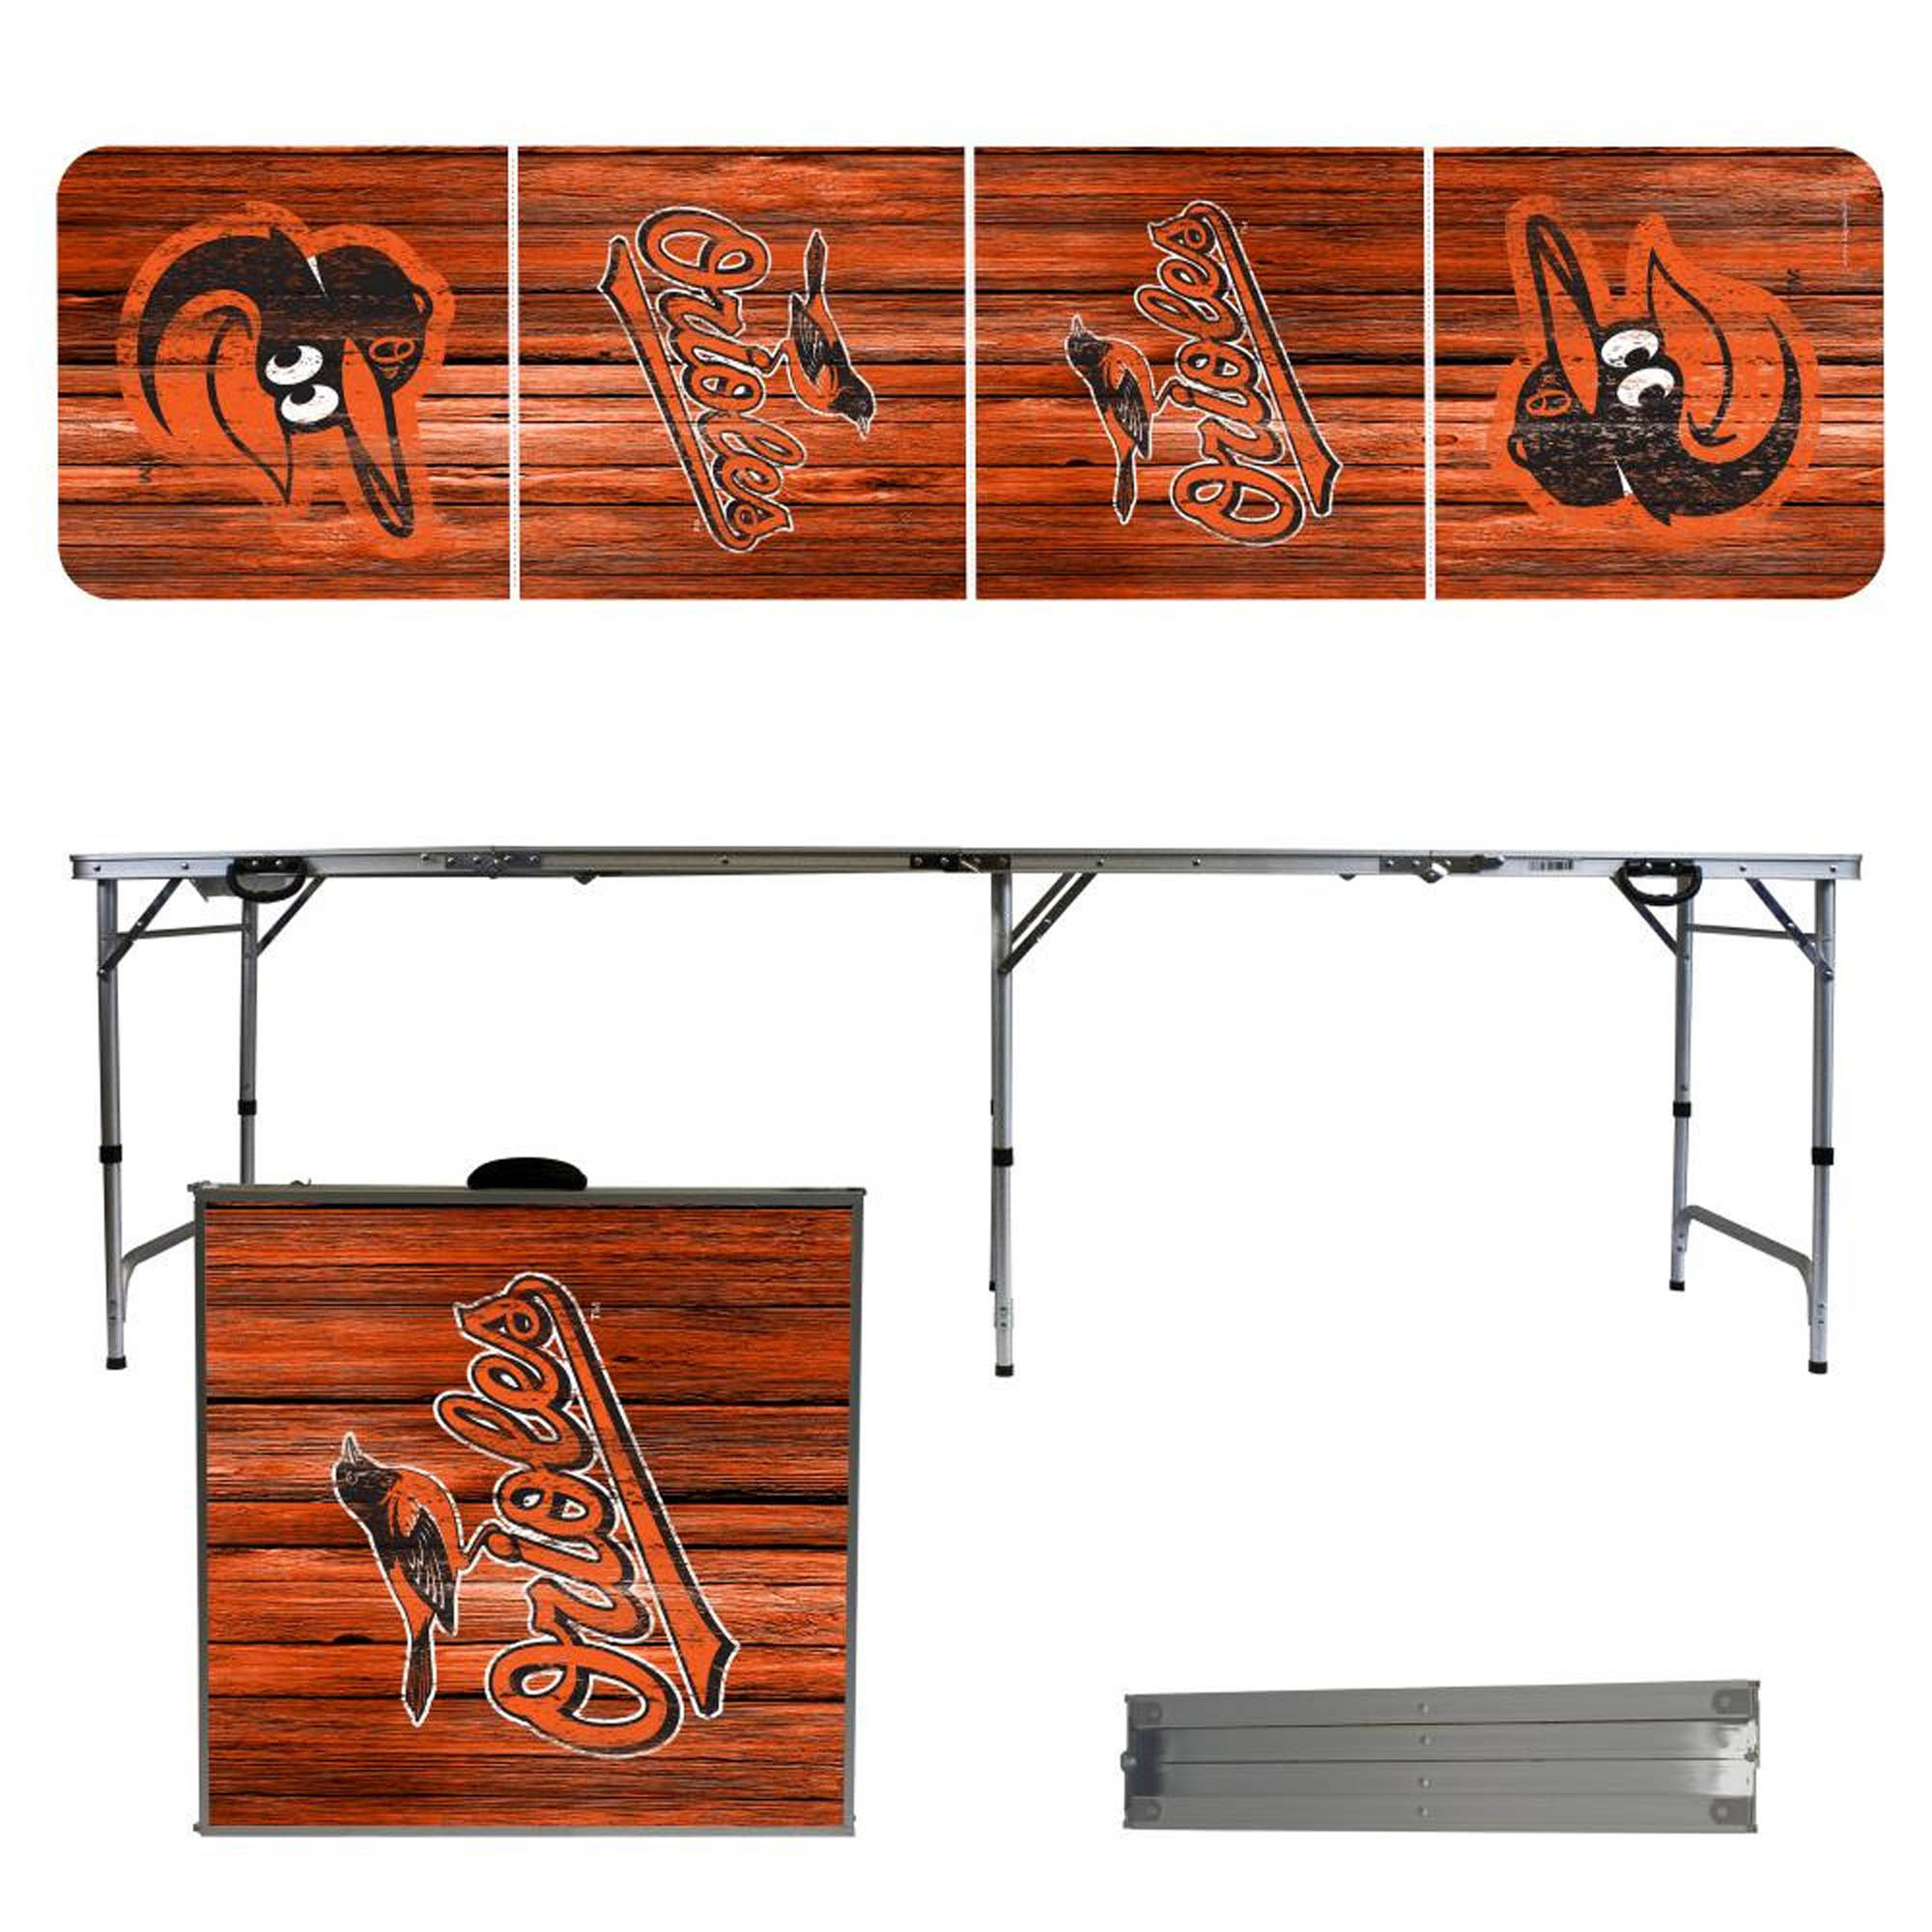 Baltimore Orioles Weathered Design 8' Portable Folding Tailgate Table - No Size